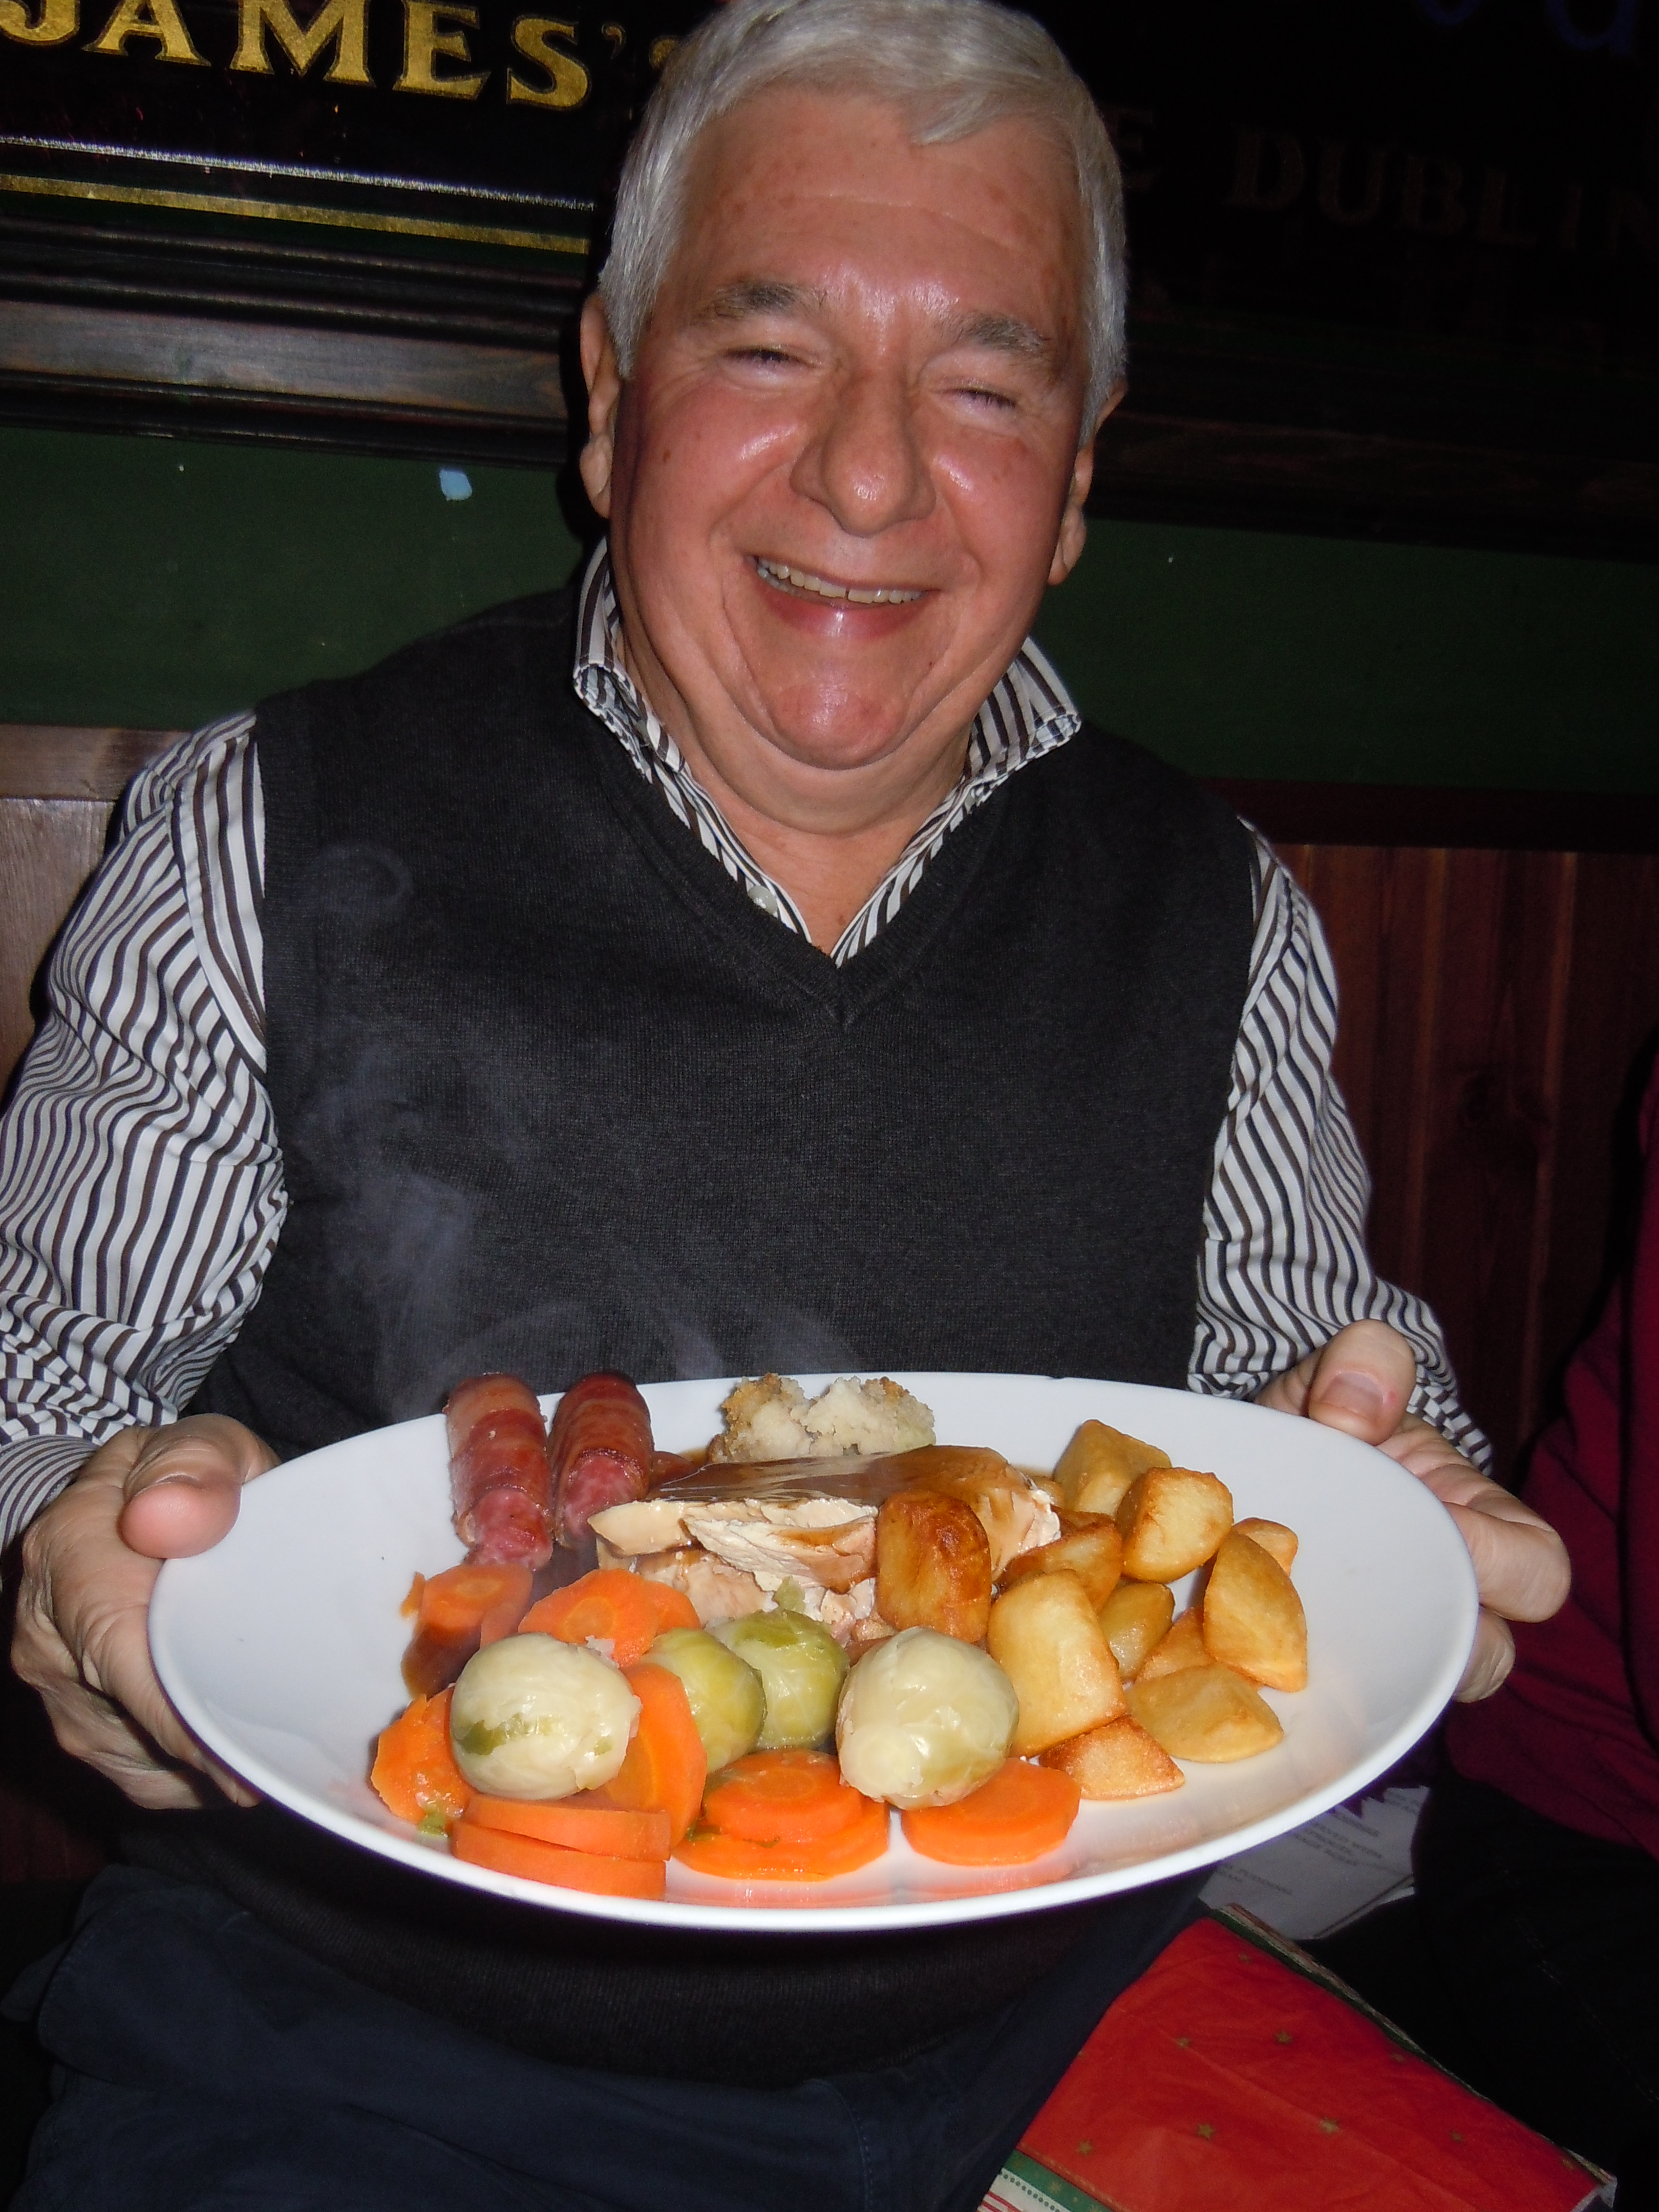 A traditional English Christmas dinner of roast turkey, sausages in bacon, roast potatoes, brussels sprouts, carrots, stuffing, gravy and cranberry sauce!!!